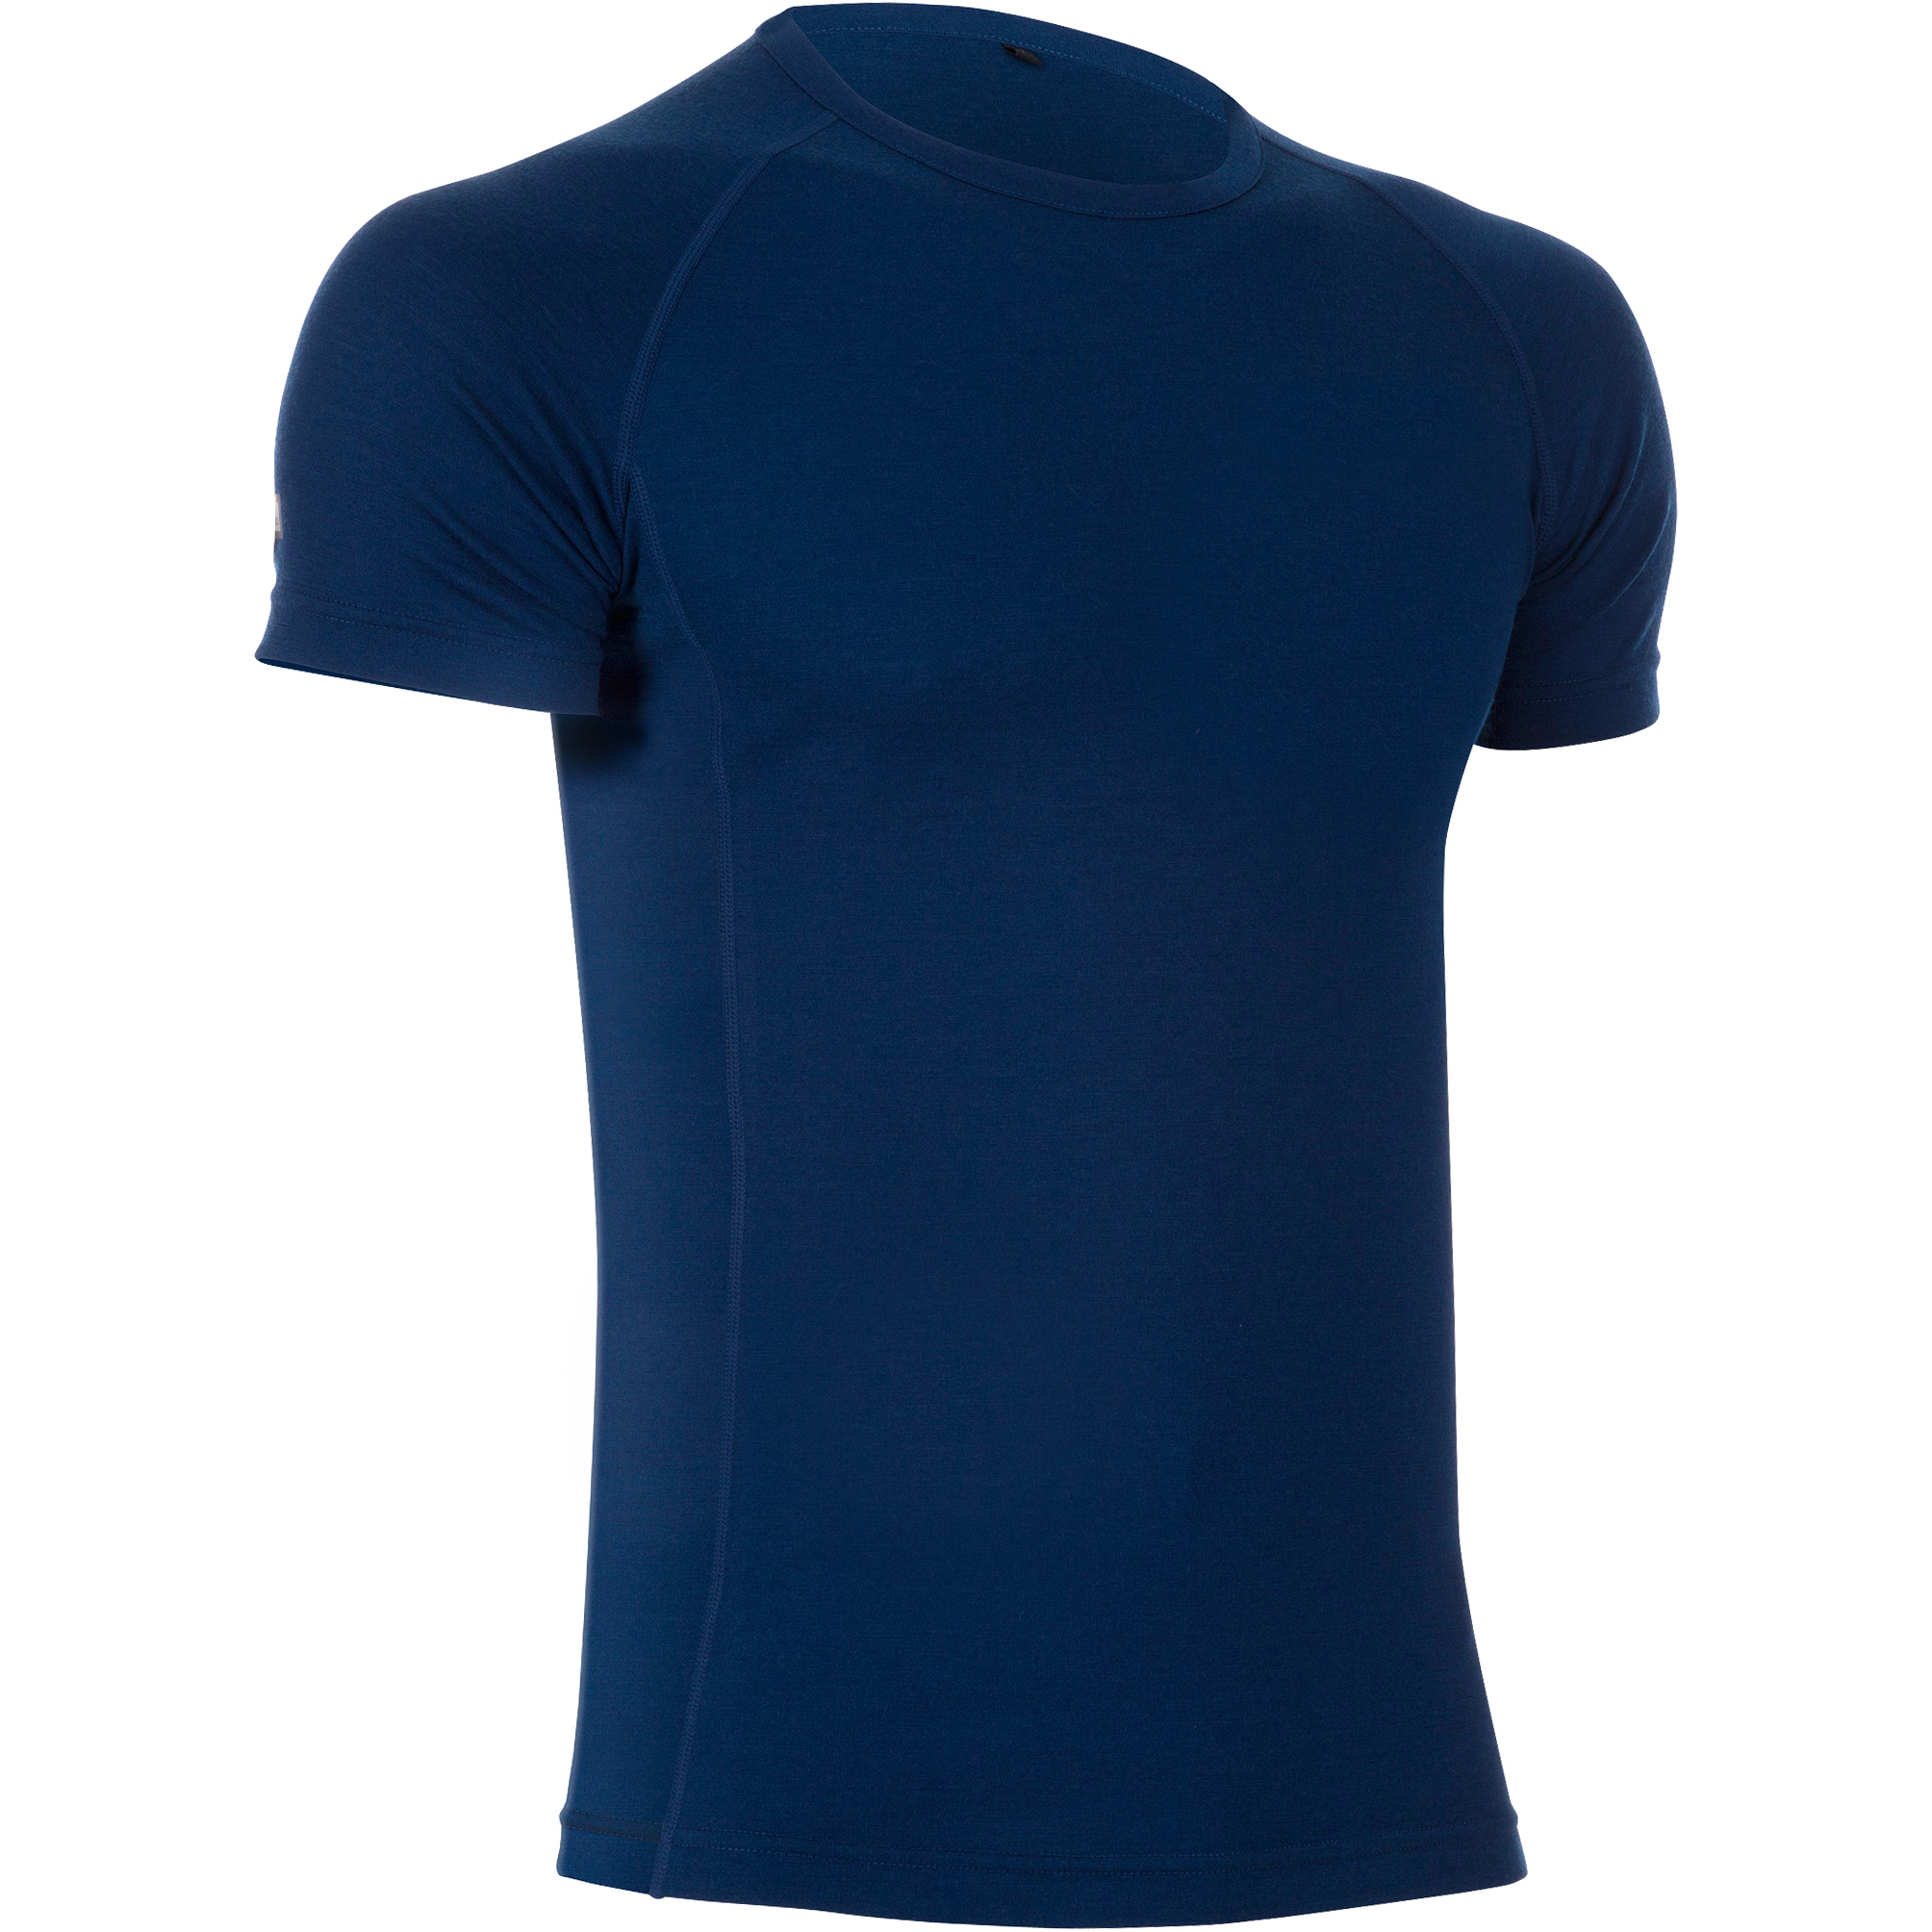 dhb Merino Short Sleeve Base Layer